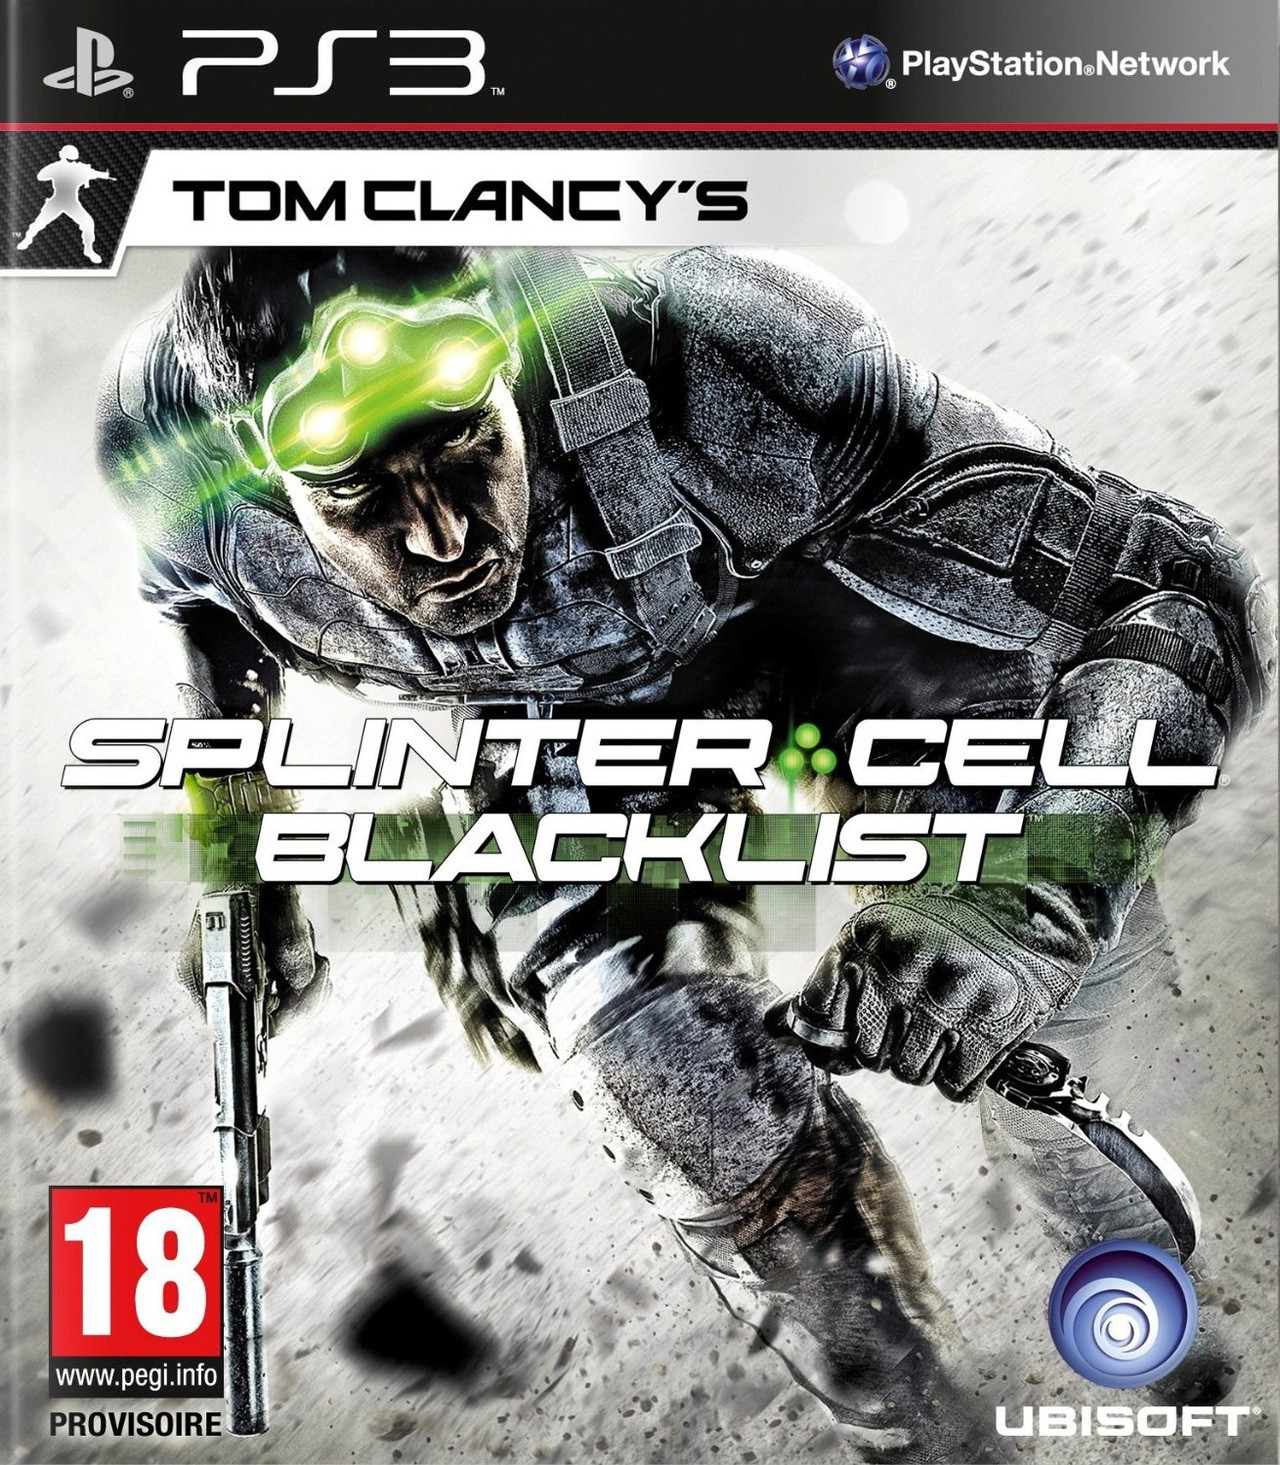 from Cullen matchmaking splinter cell blacklist